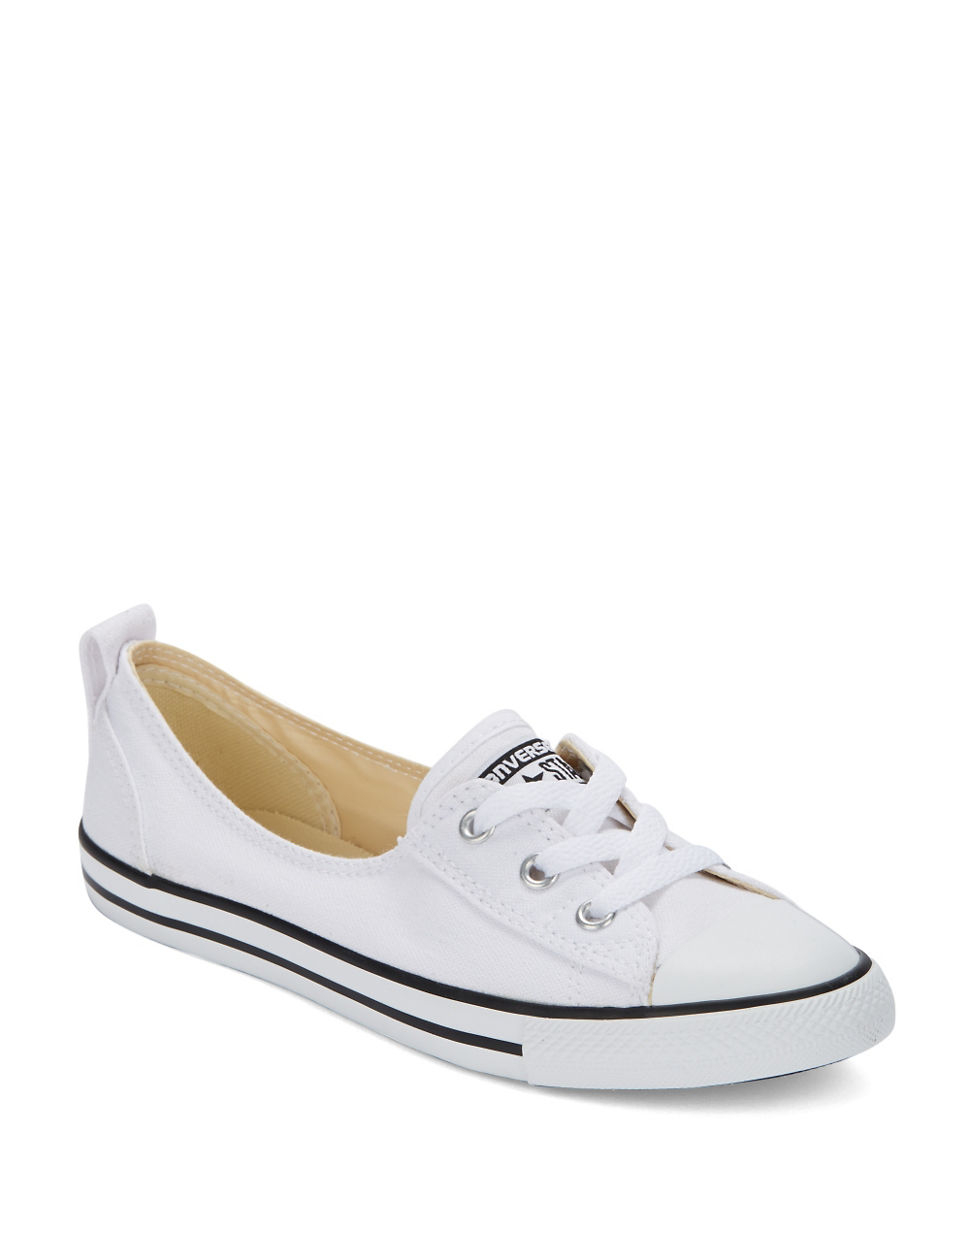 c9070c1ba85 Up Up White In Sneakers Lyst Lace Ballet Ballet Converse FnPgt